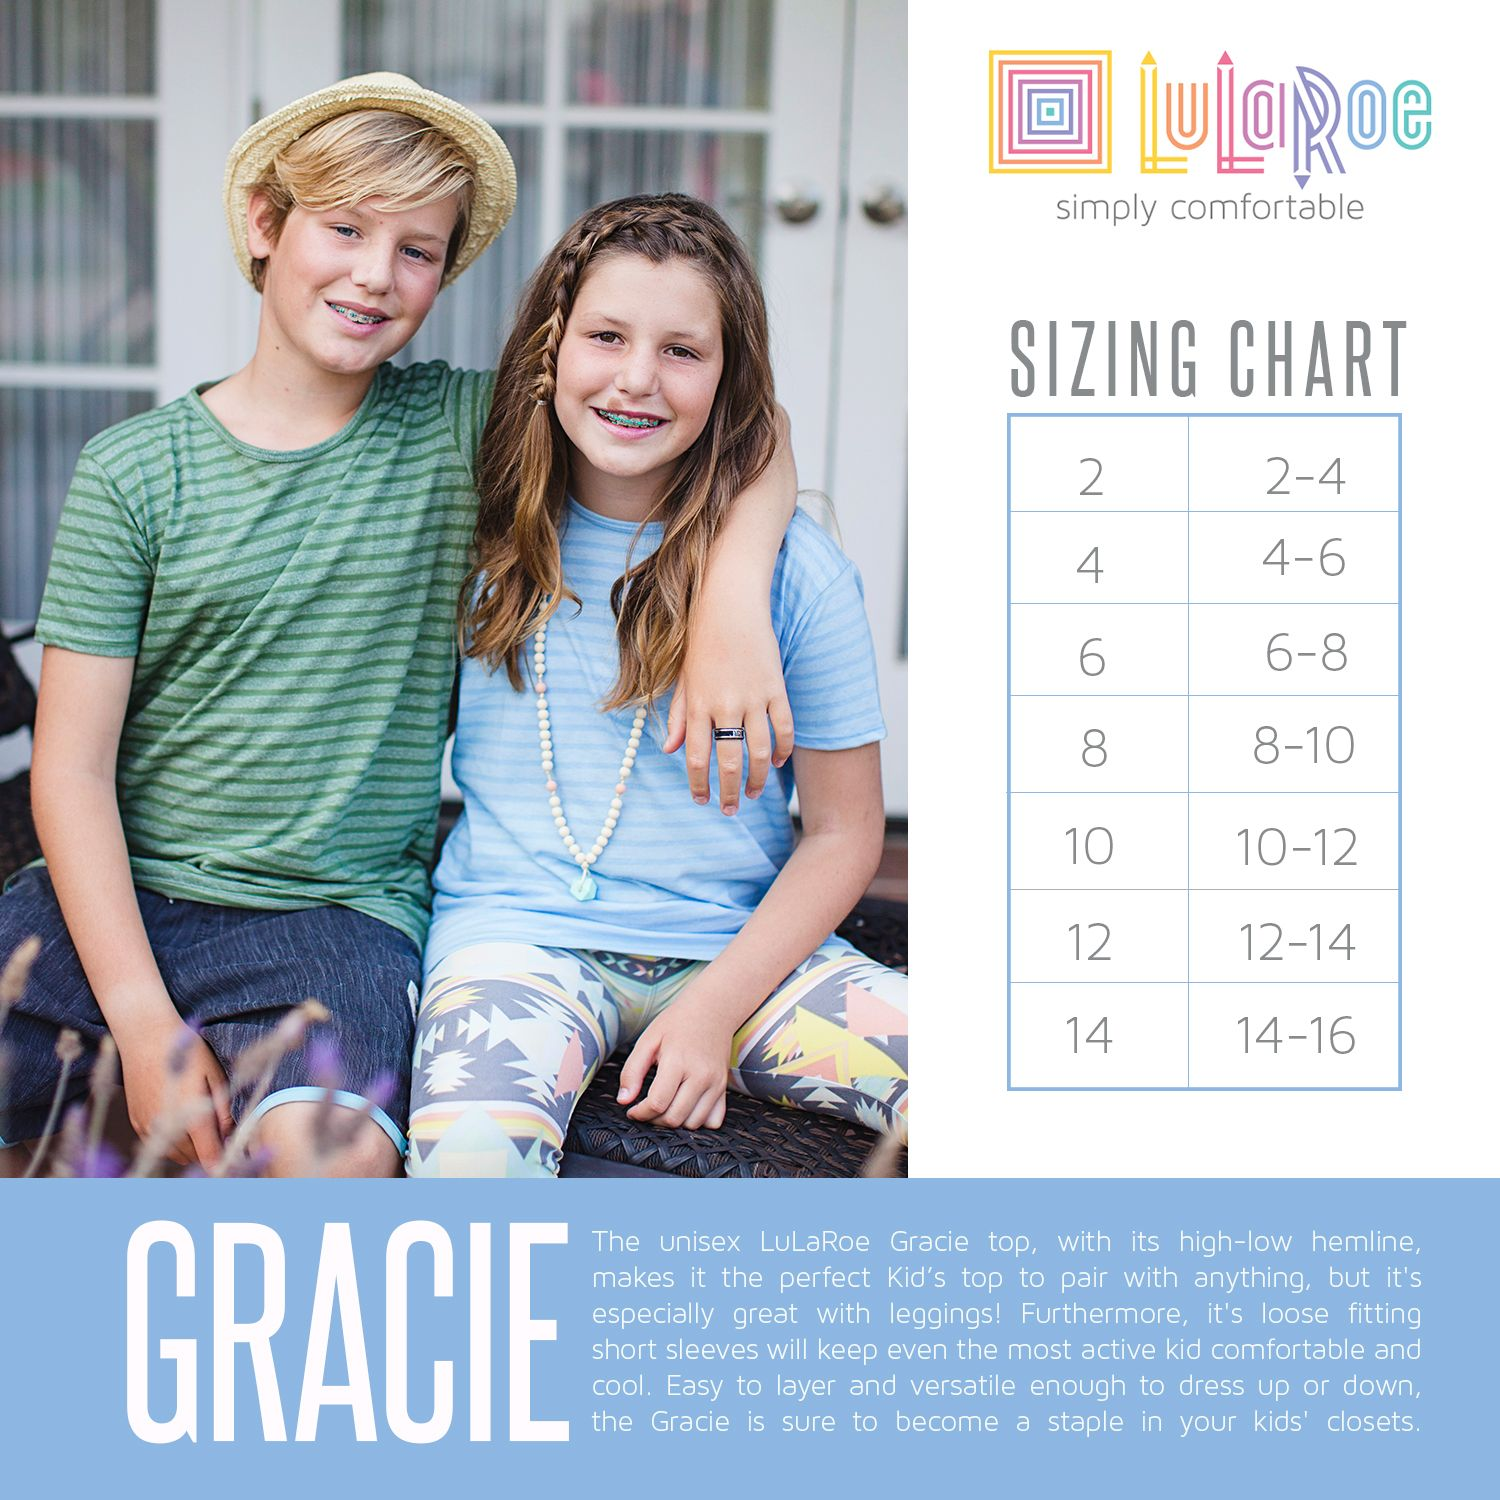 ef8ddd1ac49d5 Gracie Kids tee by LuLaRoe is a favorite with leggings or your kiddo's  favorite shorts! Size chart for the LuLaRoe Gracie